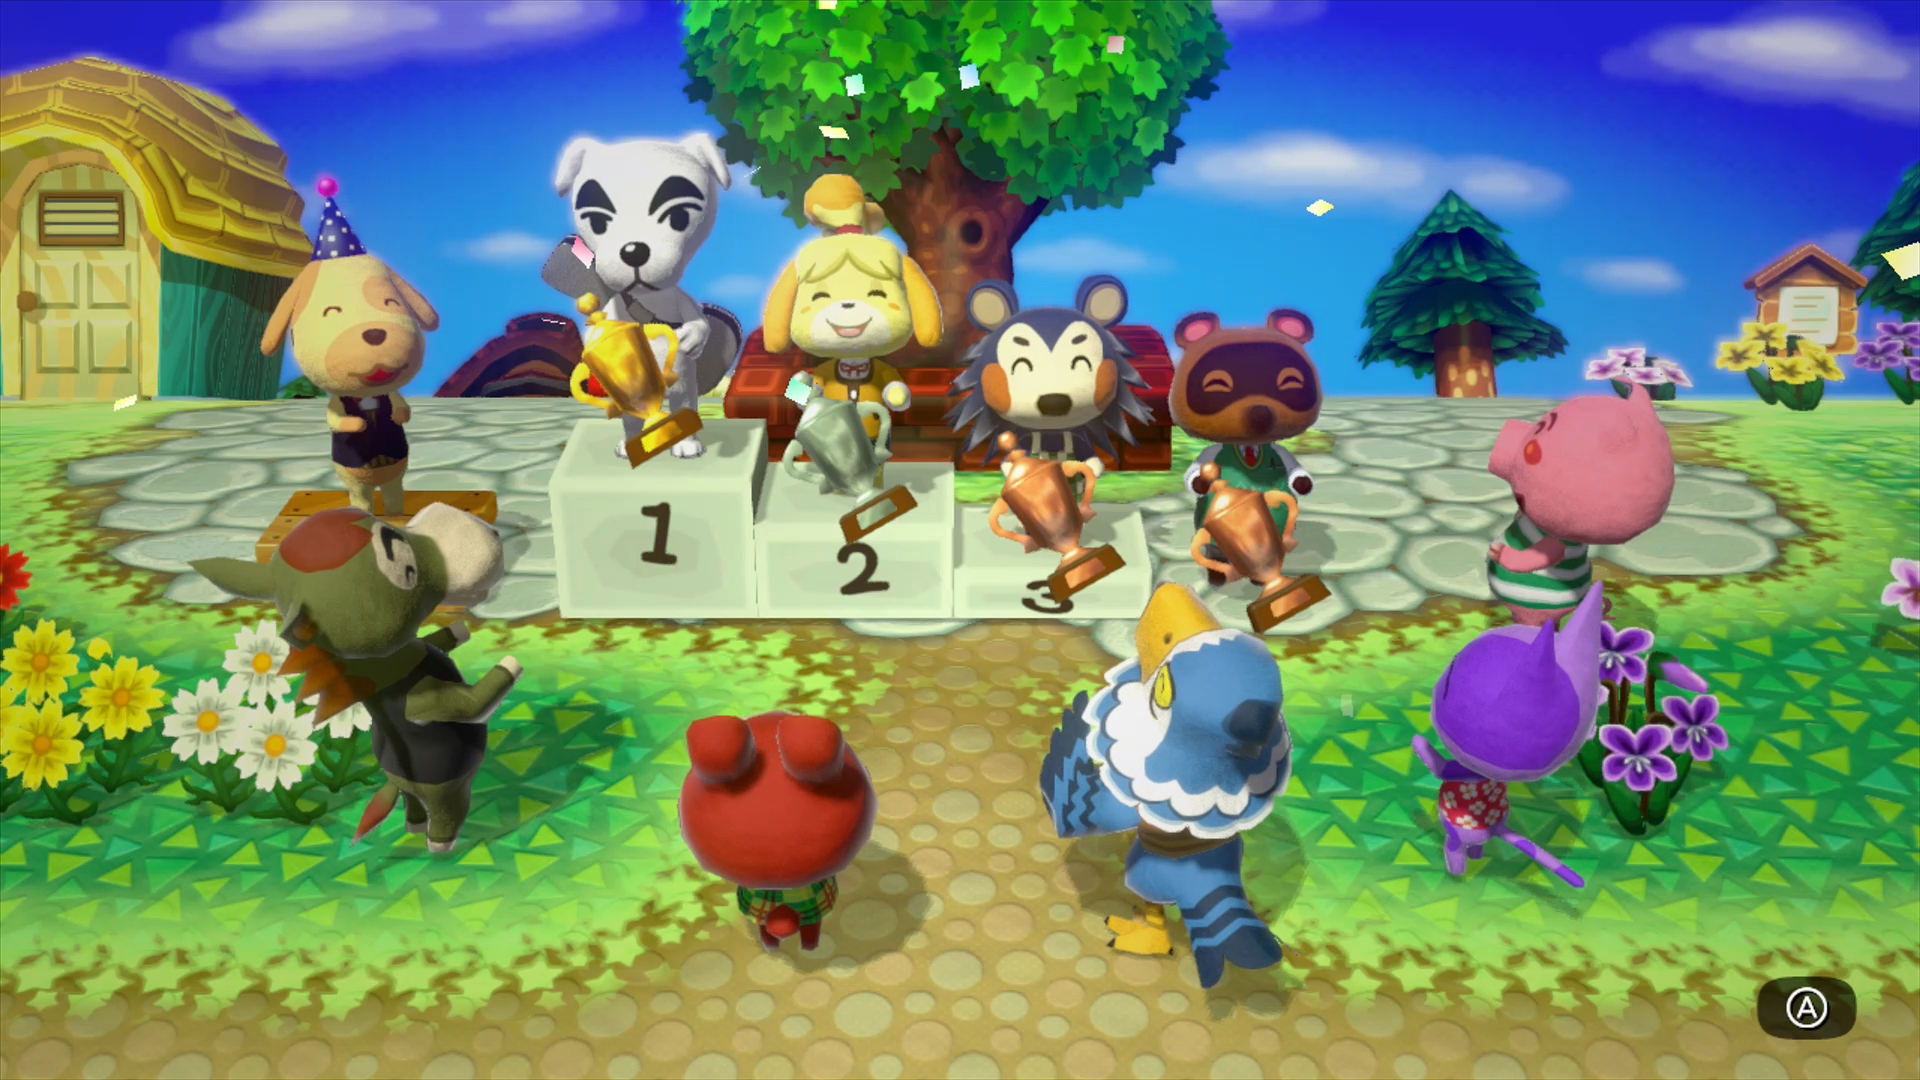 Animal Crossing Director On How Amiibo Influenced New Games